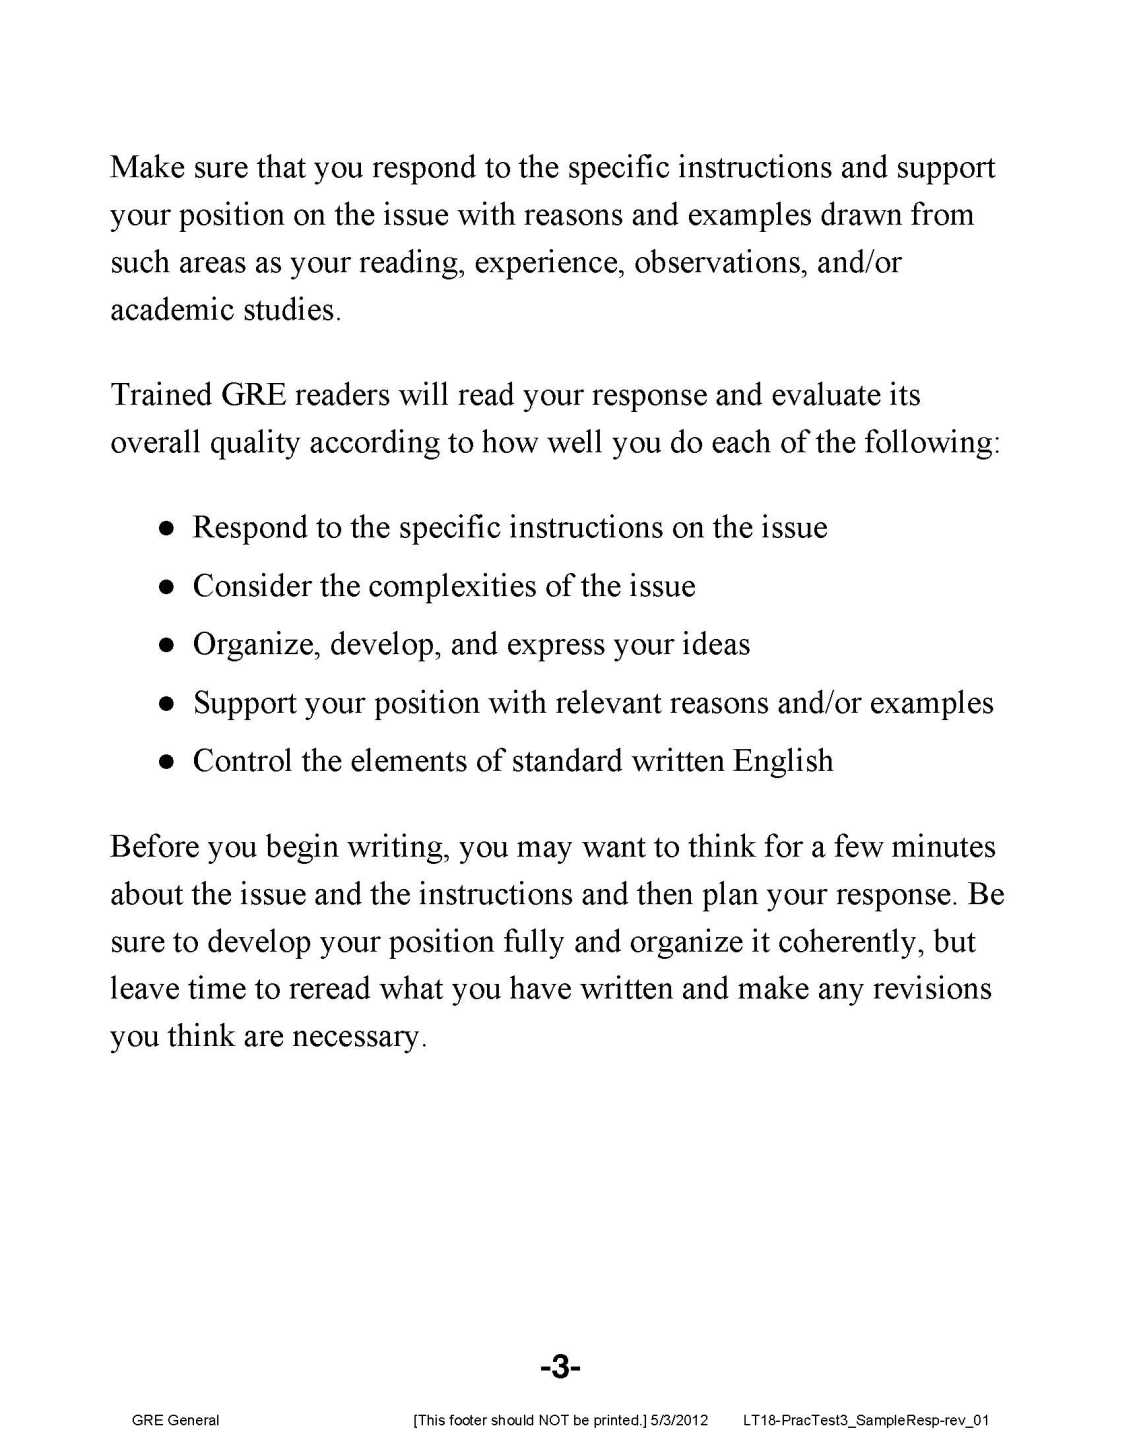 essay scores gre We'll help you write the gre issue essay with tips for drafting the intro, body, conclusion then work on gre essay samples with our free essay prompts.